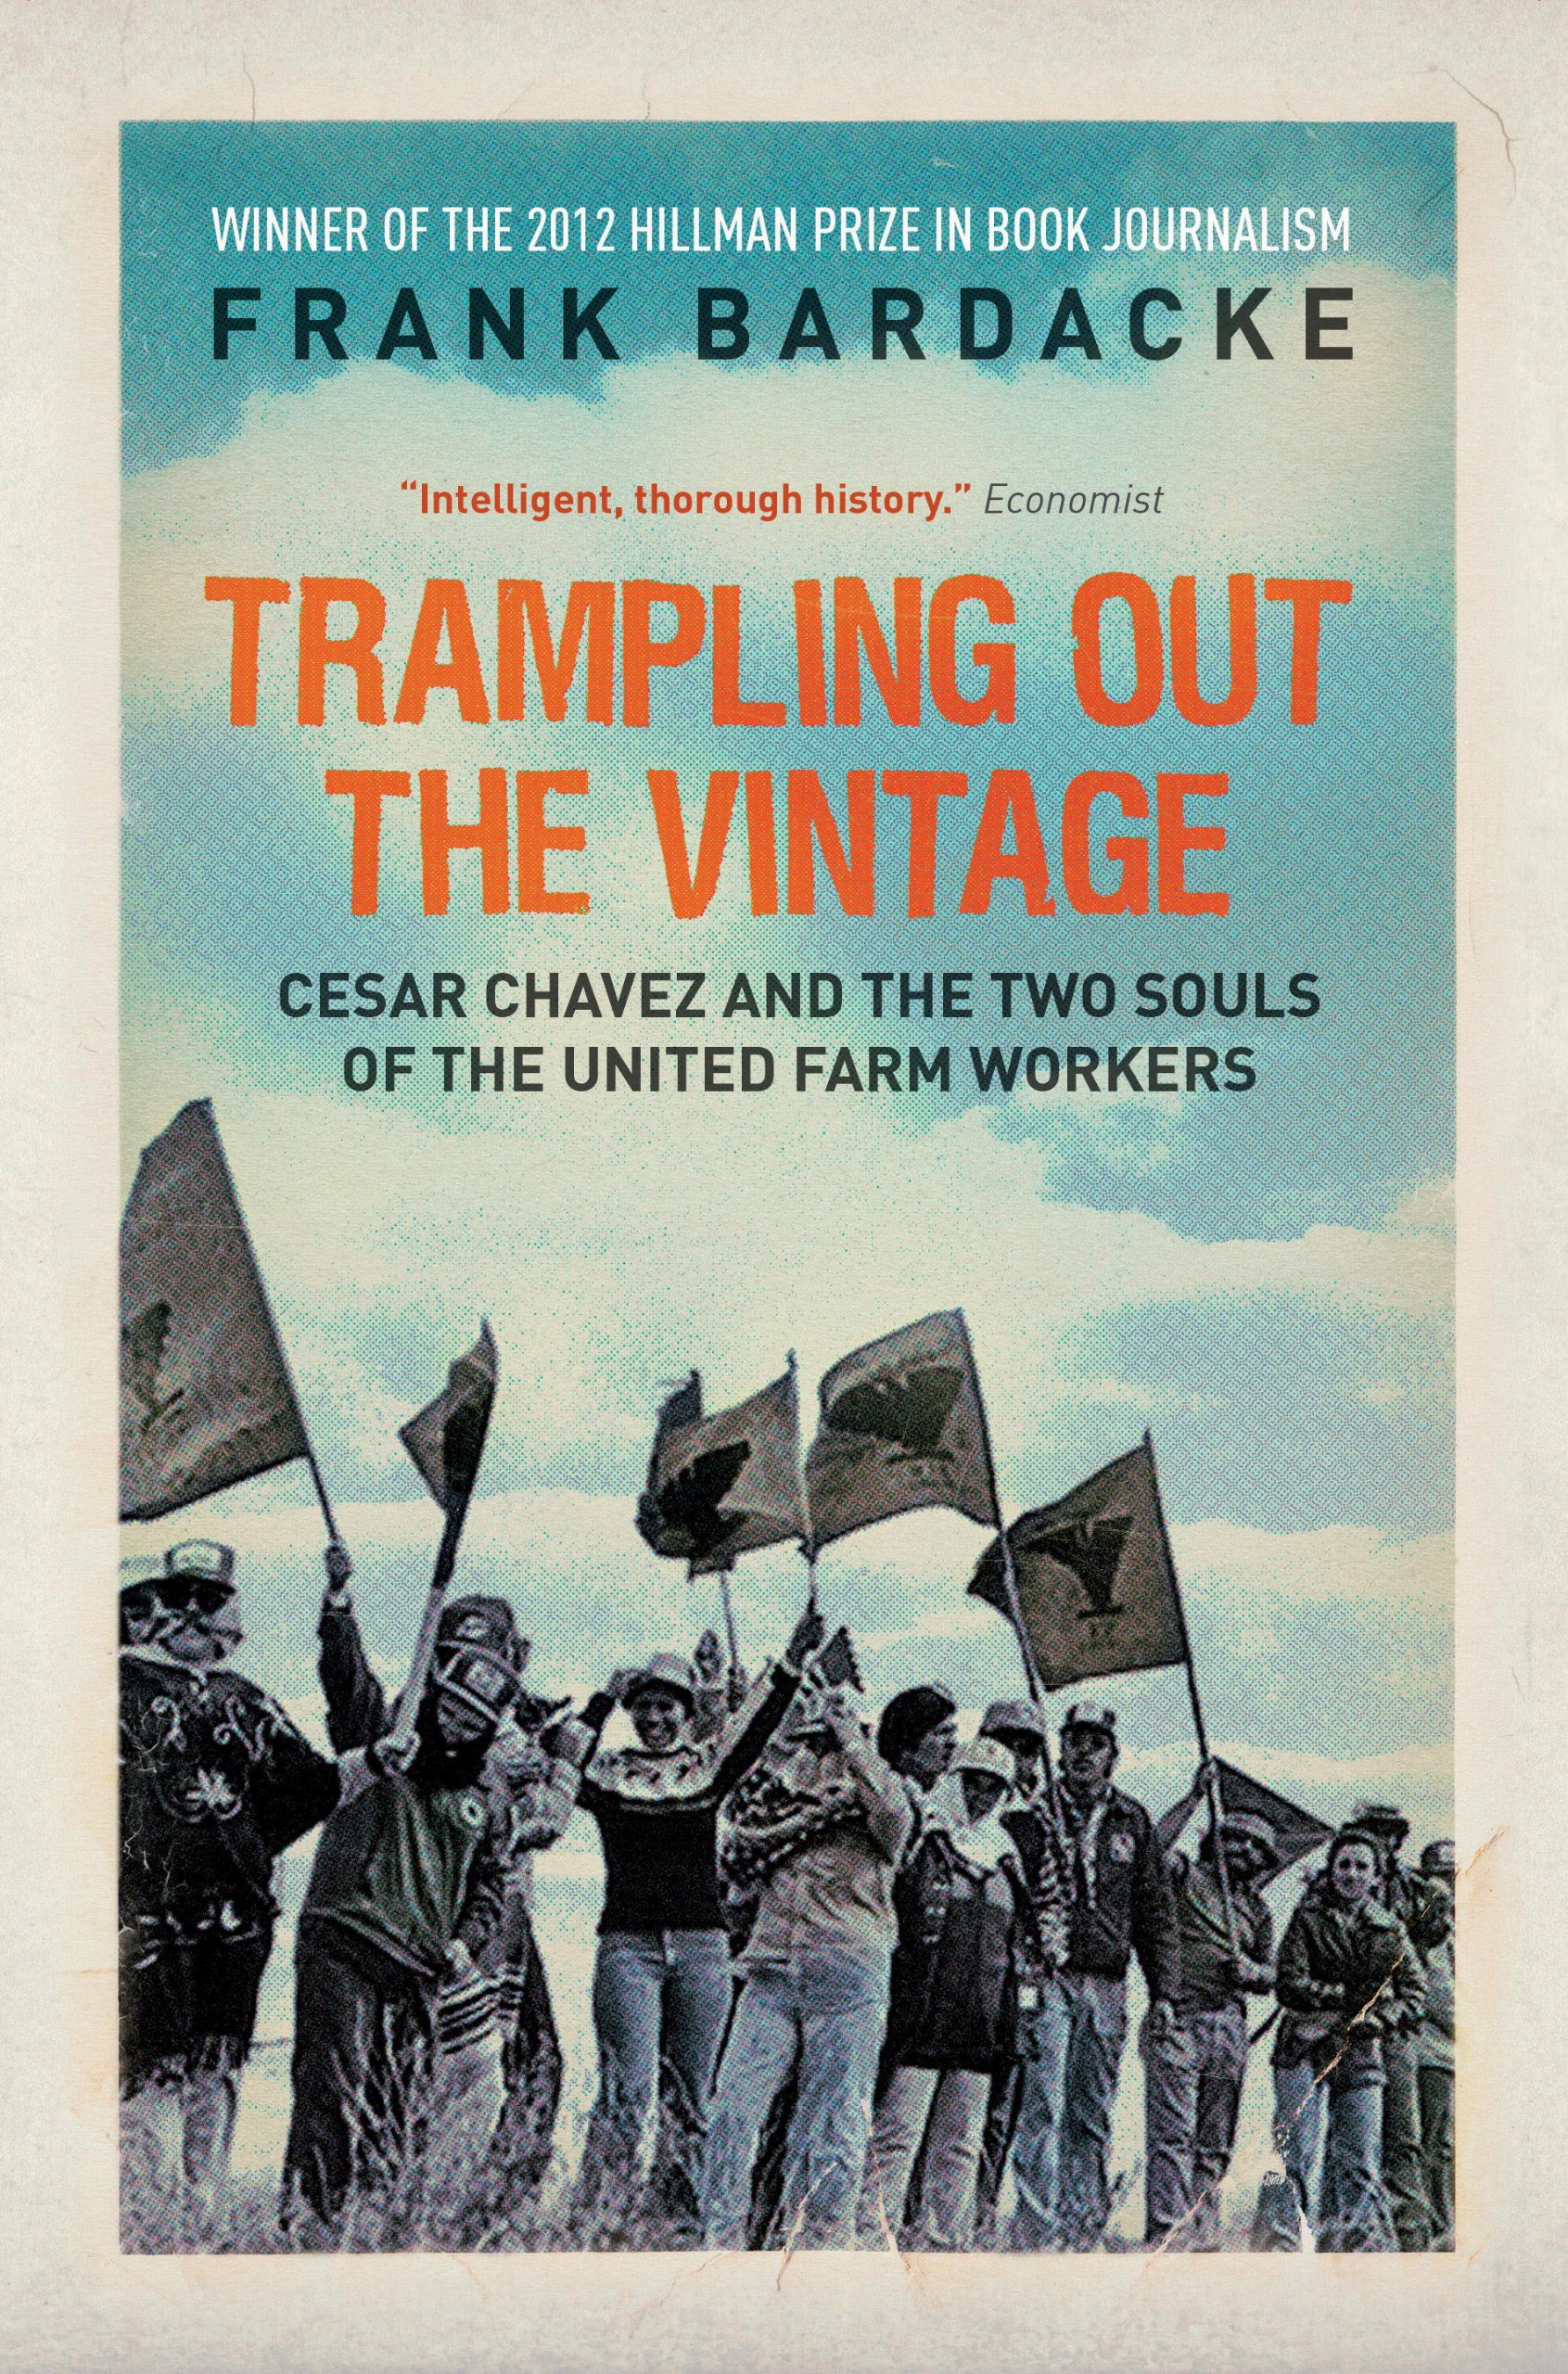 Trampling Out the Vintage: Cesar Chavez and the Two Souls of the United Farm Workers